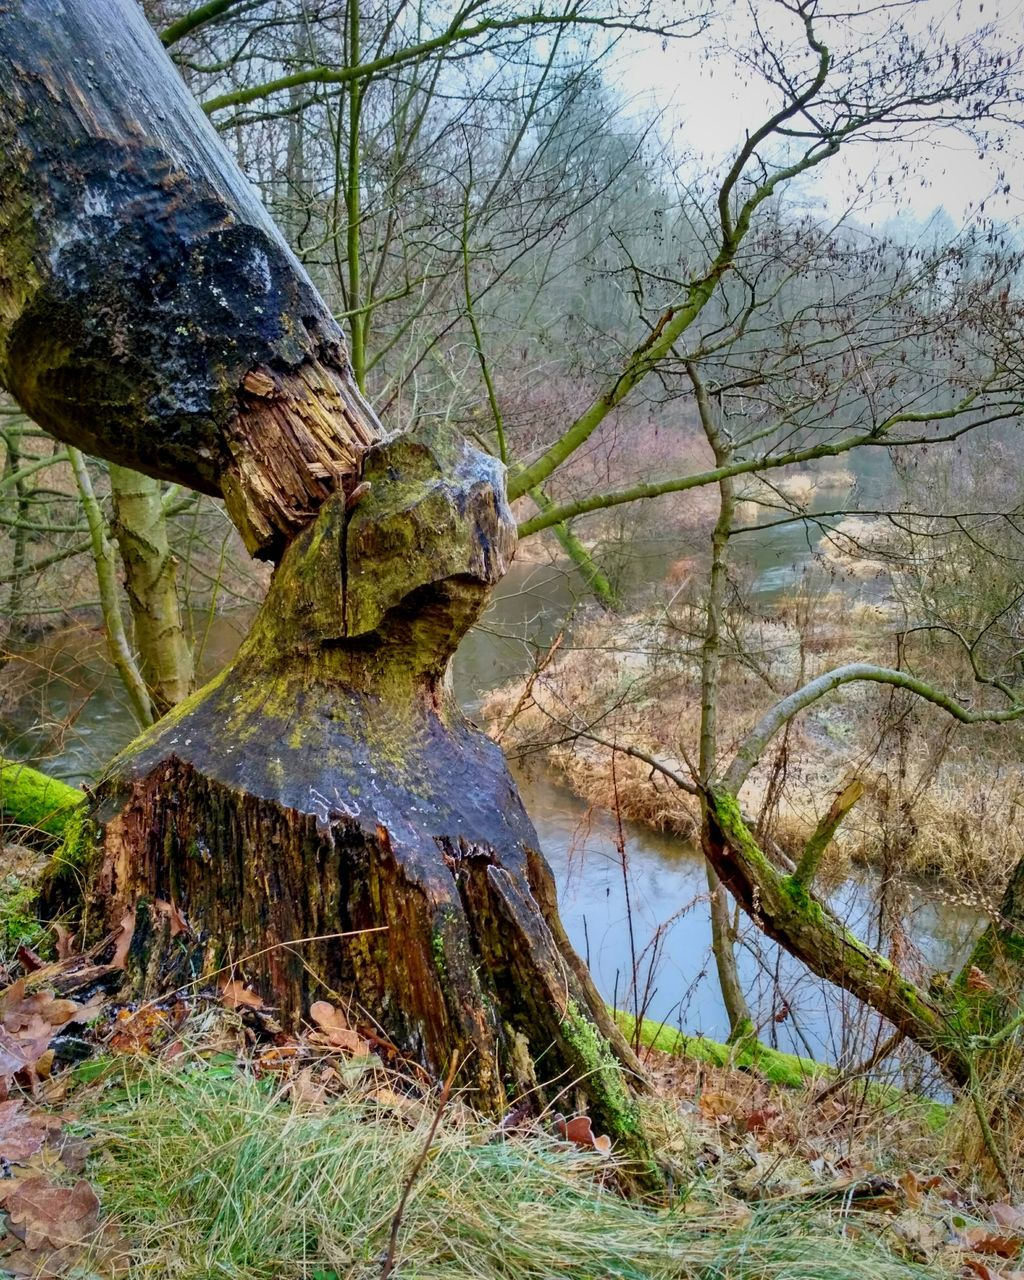 tree, nature, day, forest, outdoors, no people, beauty in nature, water, tree trunk, tranquility, scenics, branch, growth, grass, dead tree